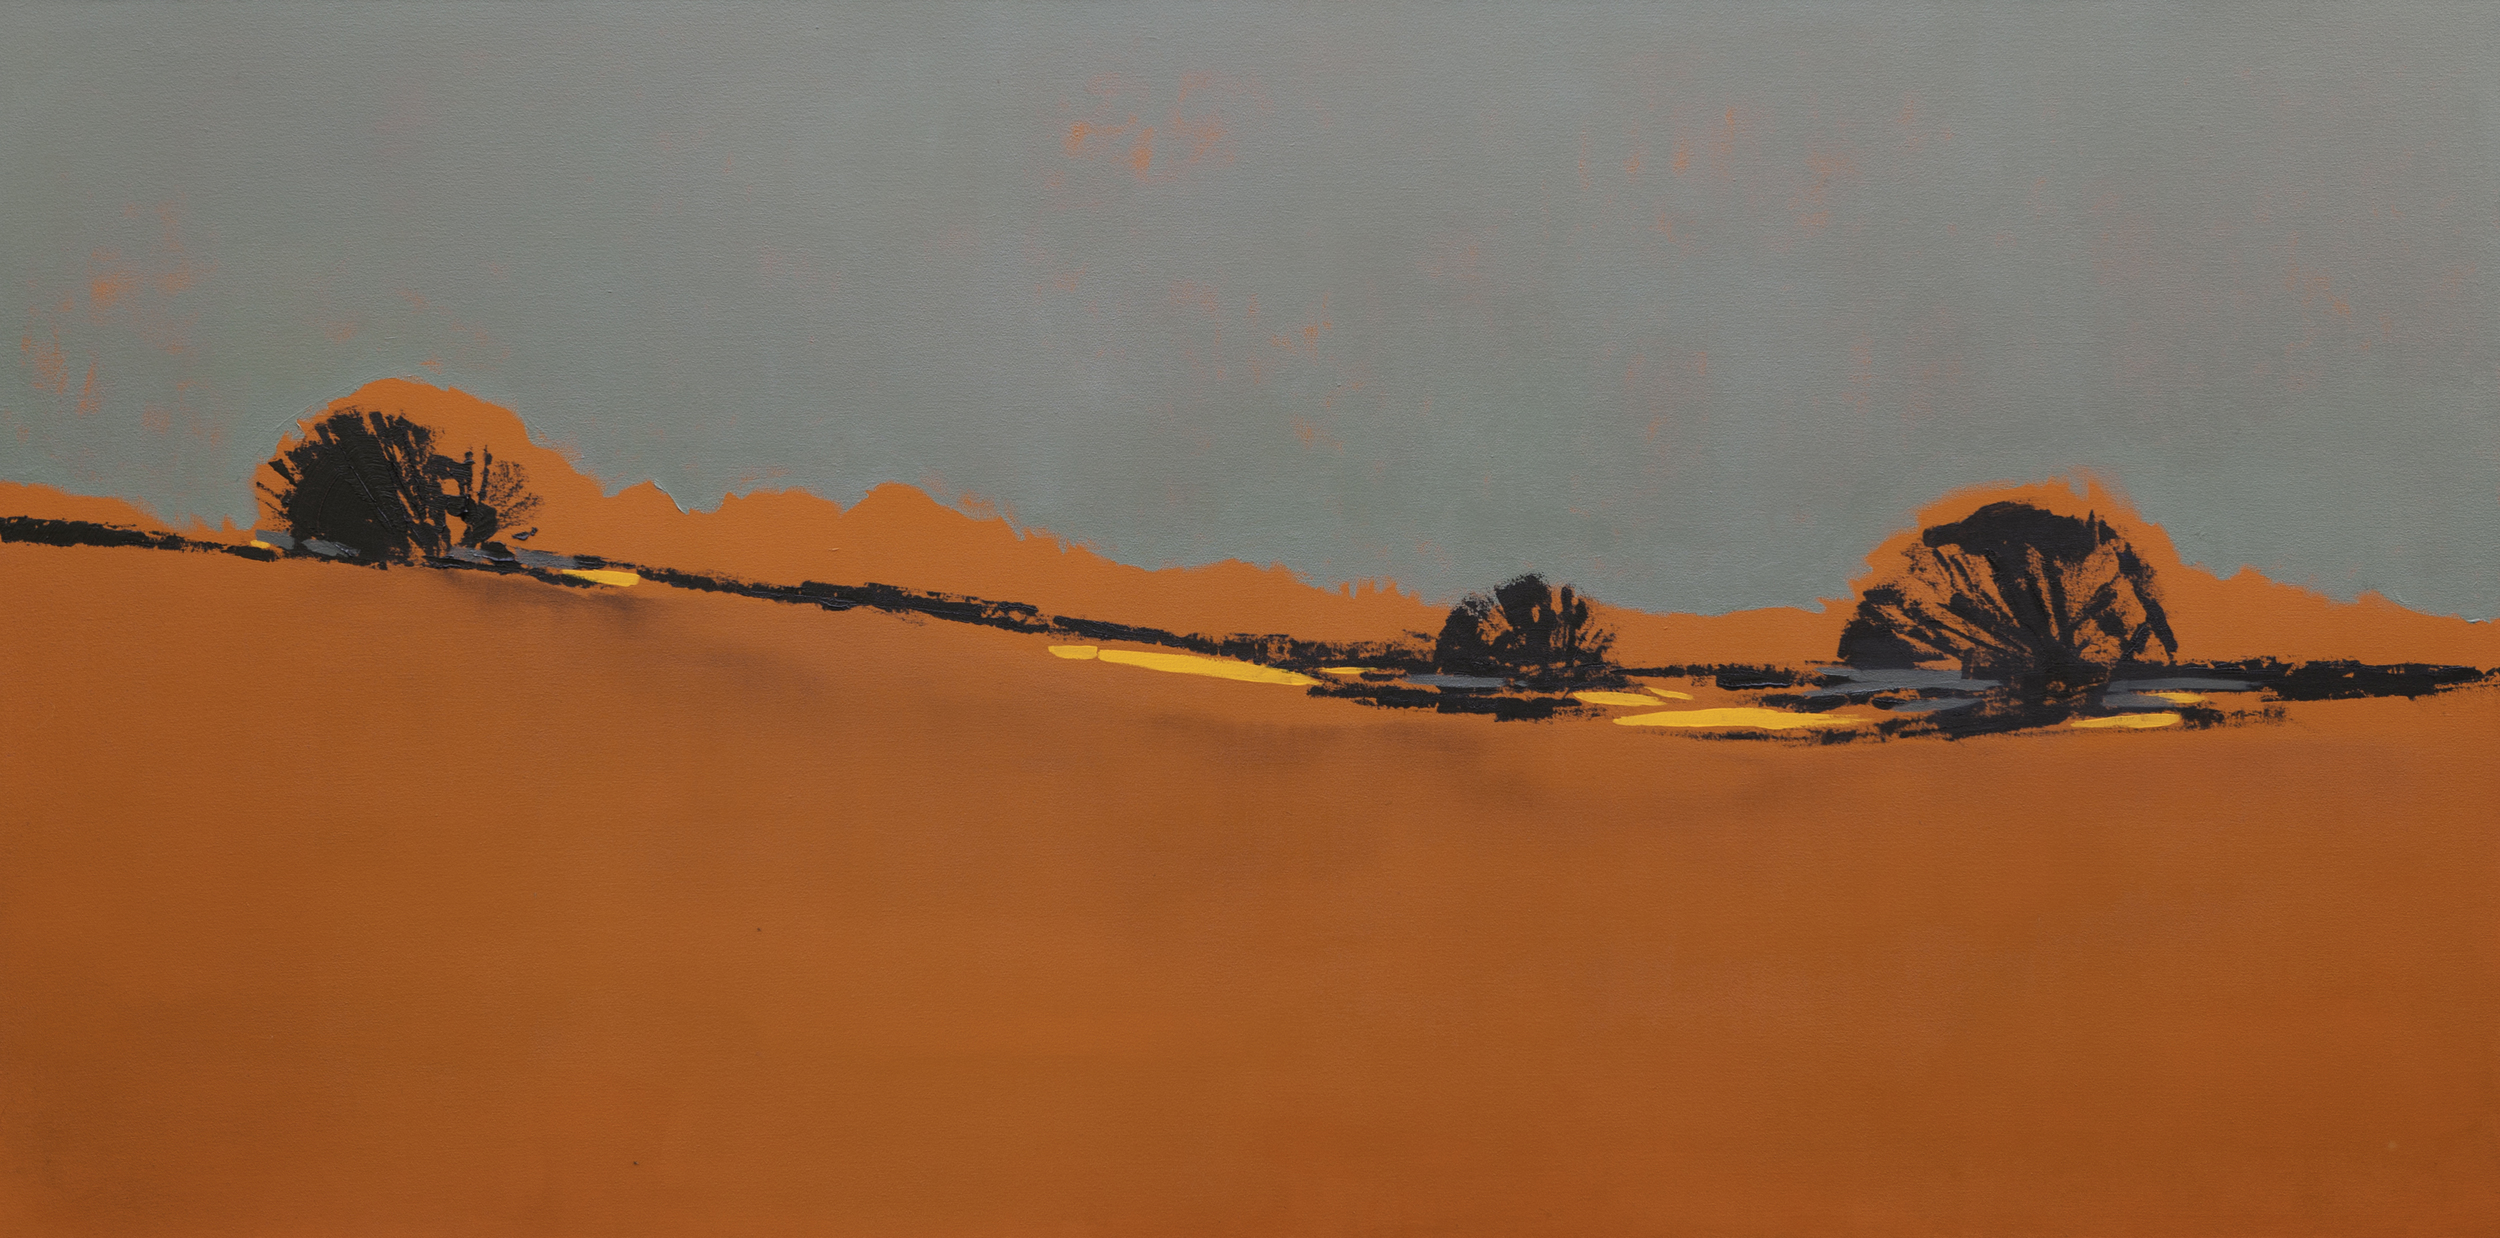 Orange Composition  - 2014 - Oil on canvas - 39 x 79 inches / 100 x 200 cm